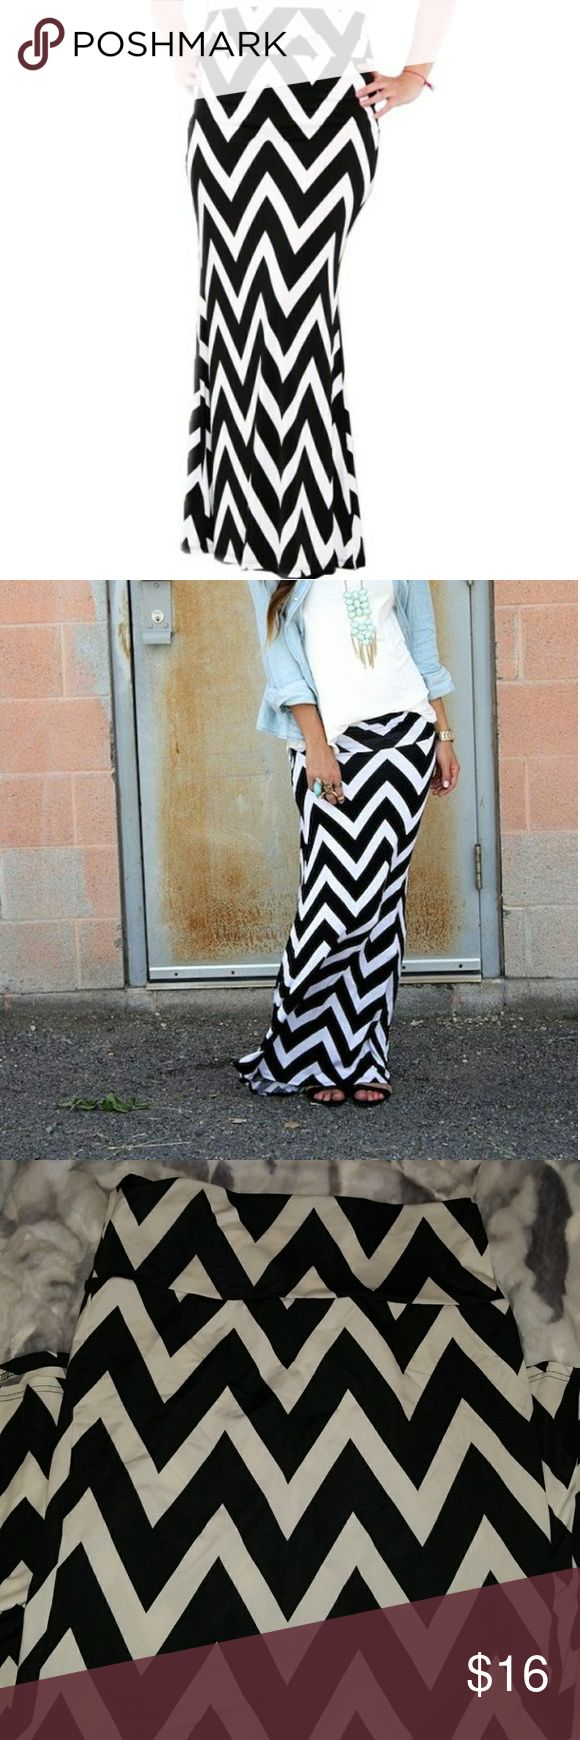 Black and White chevron maxi skirt Black and White chevron maxi skirt   Fitted at hips ,  flared out on the bottom ( semi- mermaid fit)  Worn twice,in  great condition   Size: Juniors XL  Very comfortable,  top band can be rolled down to adjust the length 😉  Comes from smoke and pet free home 🤗 XOXO Skirts Maxi